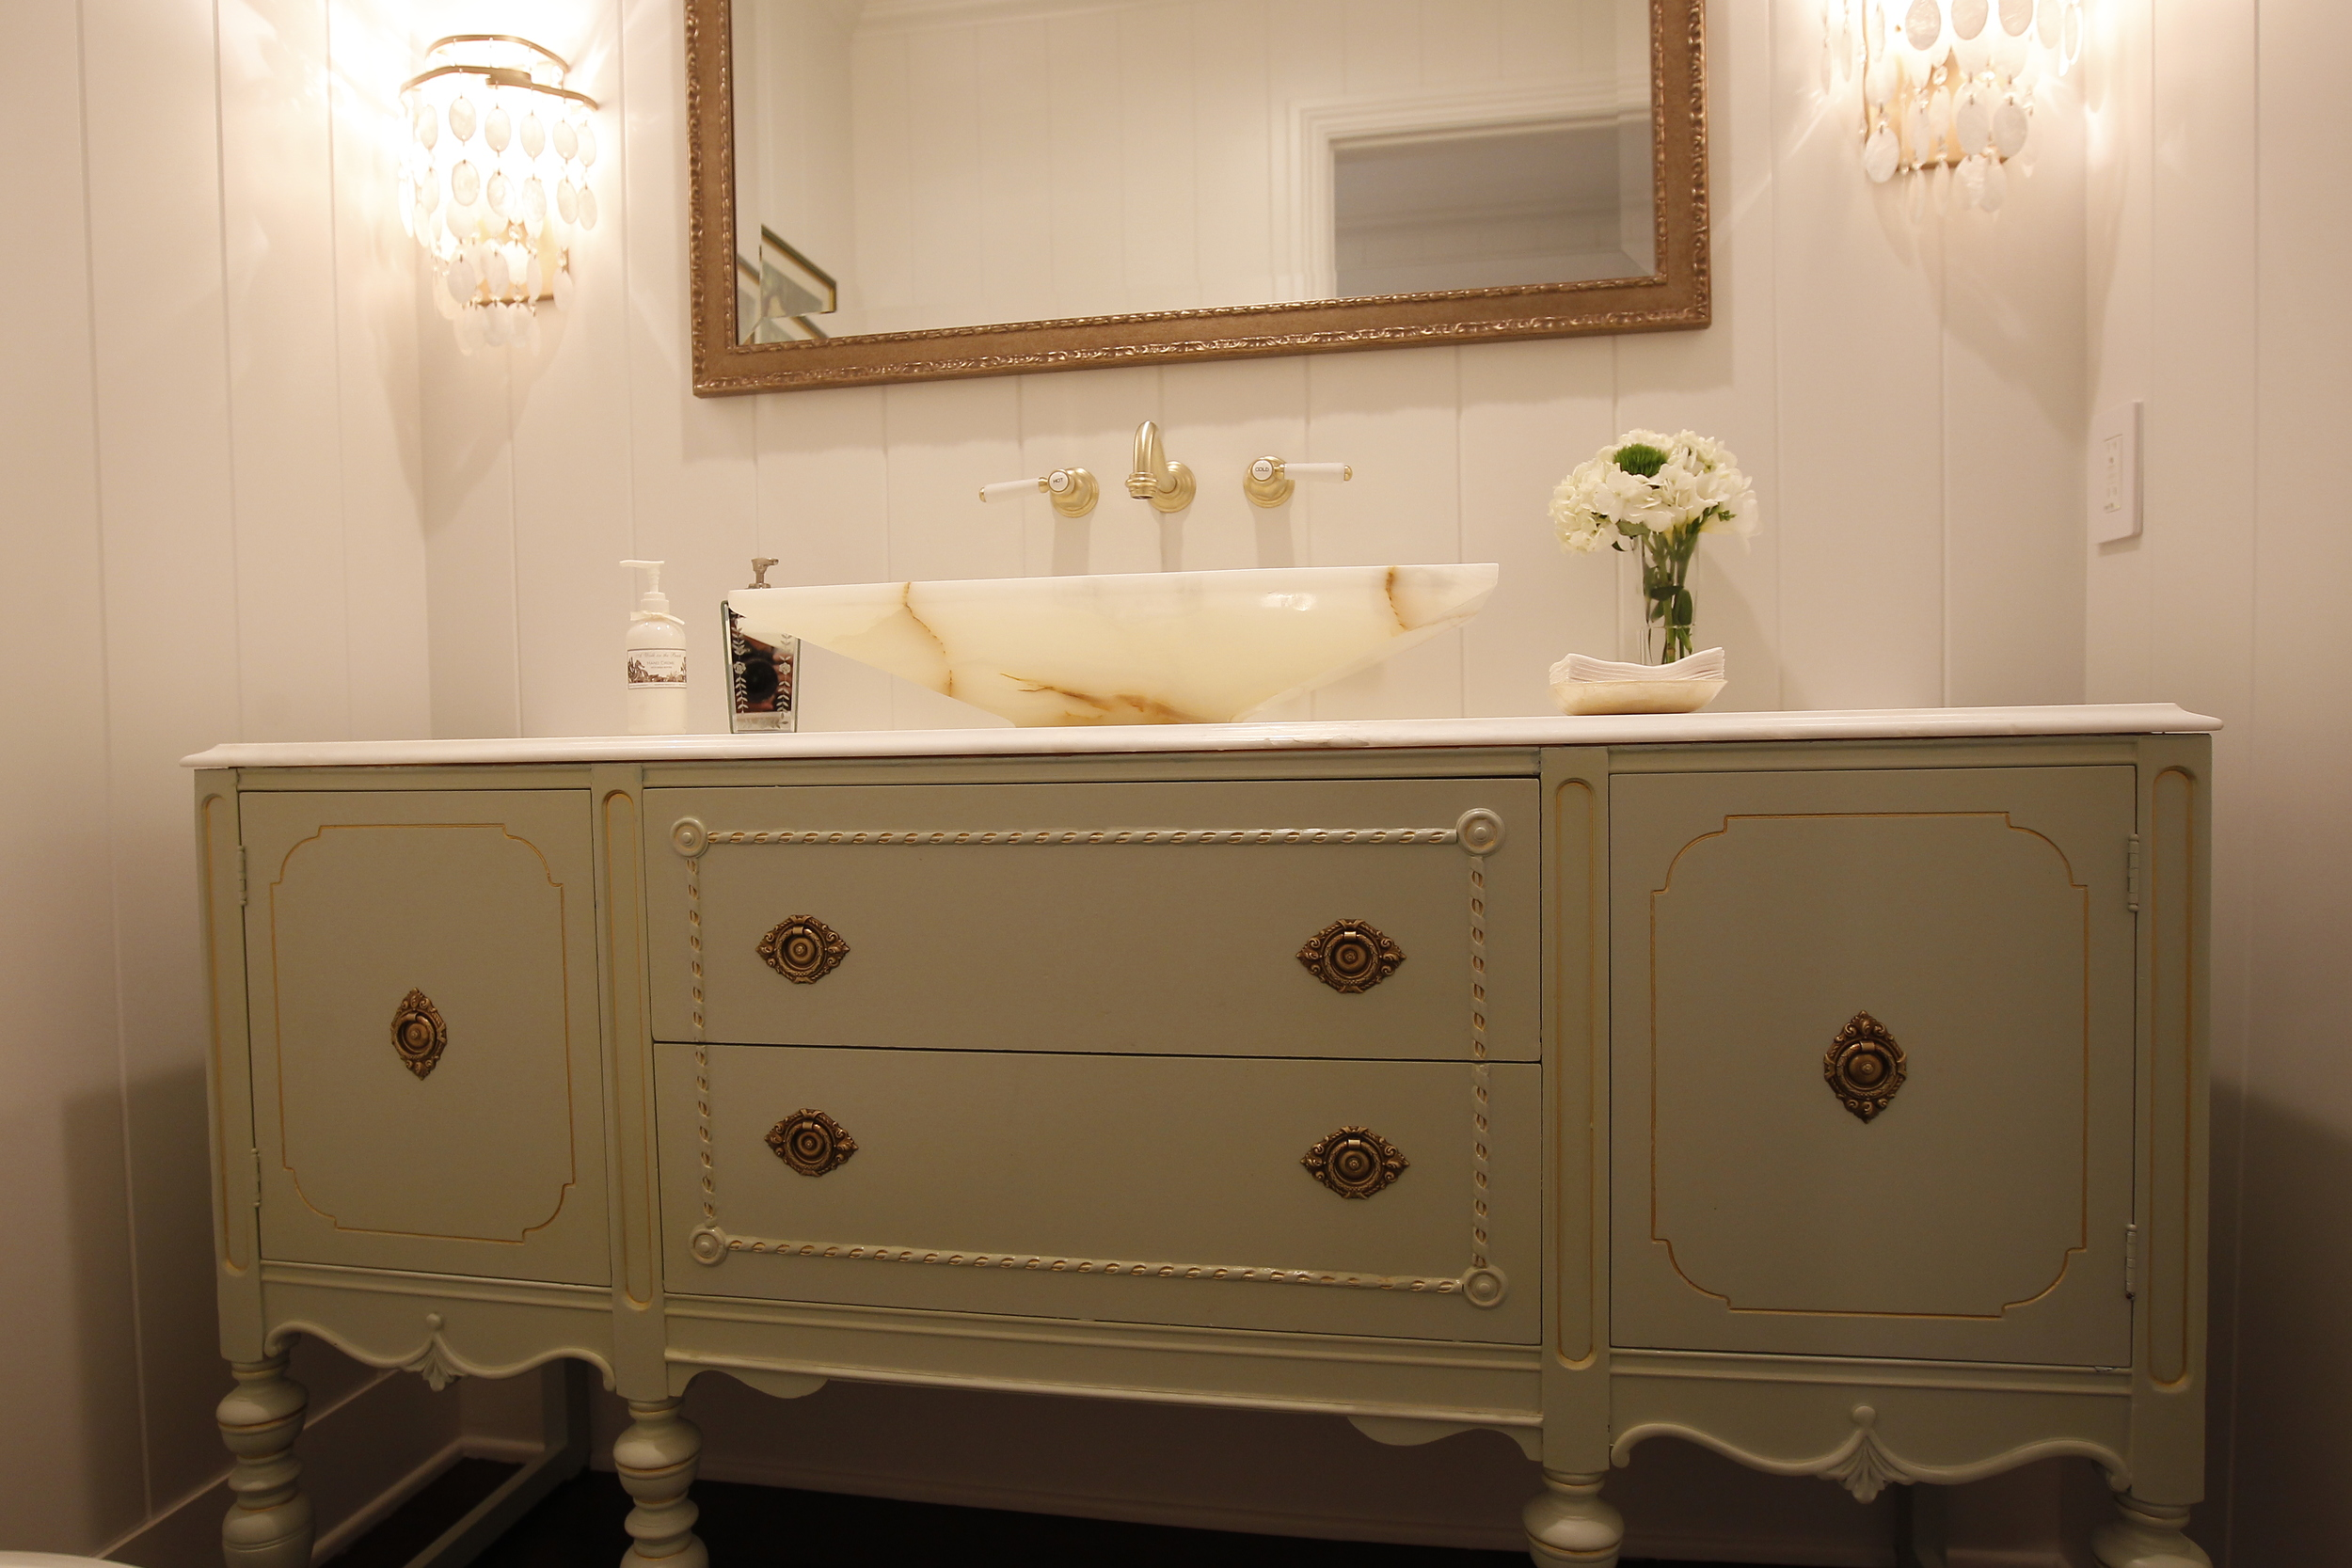 Powder Room painted vintage vanity